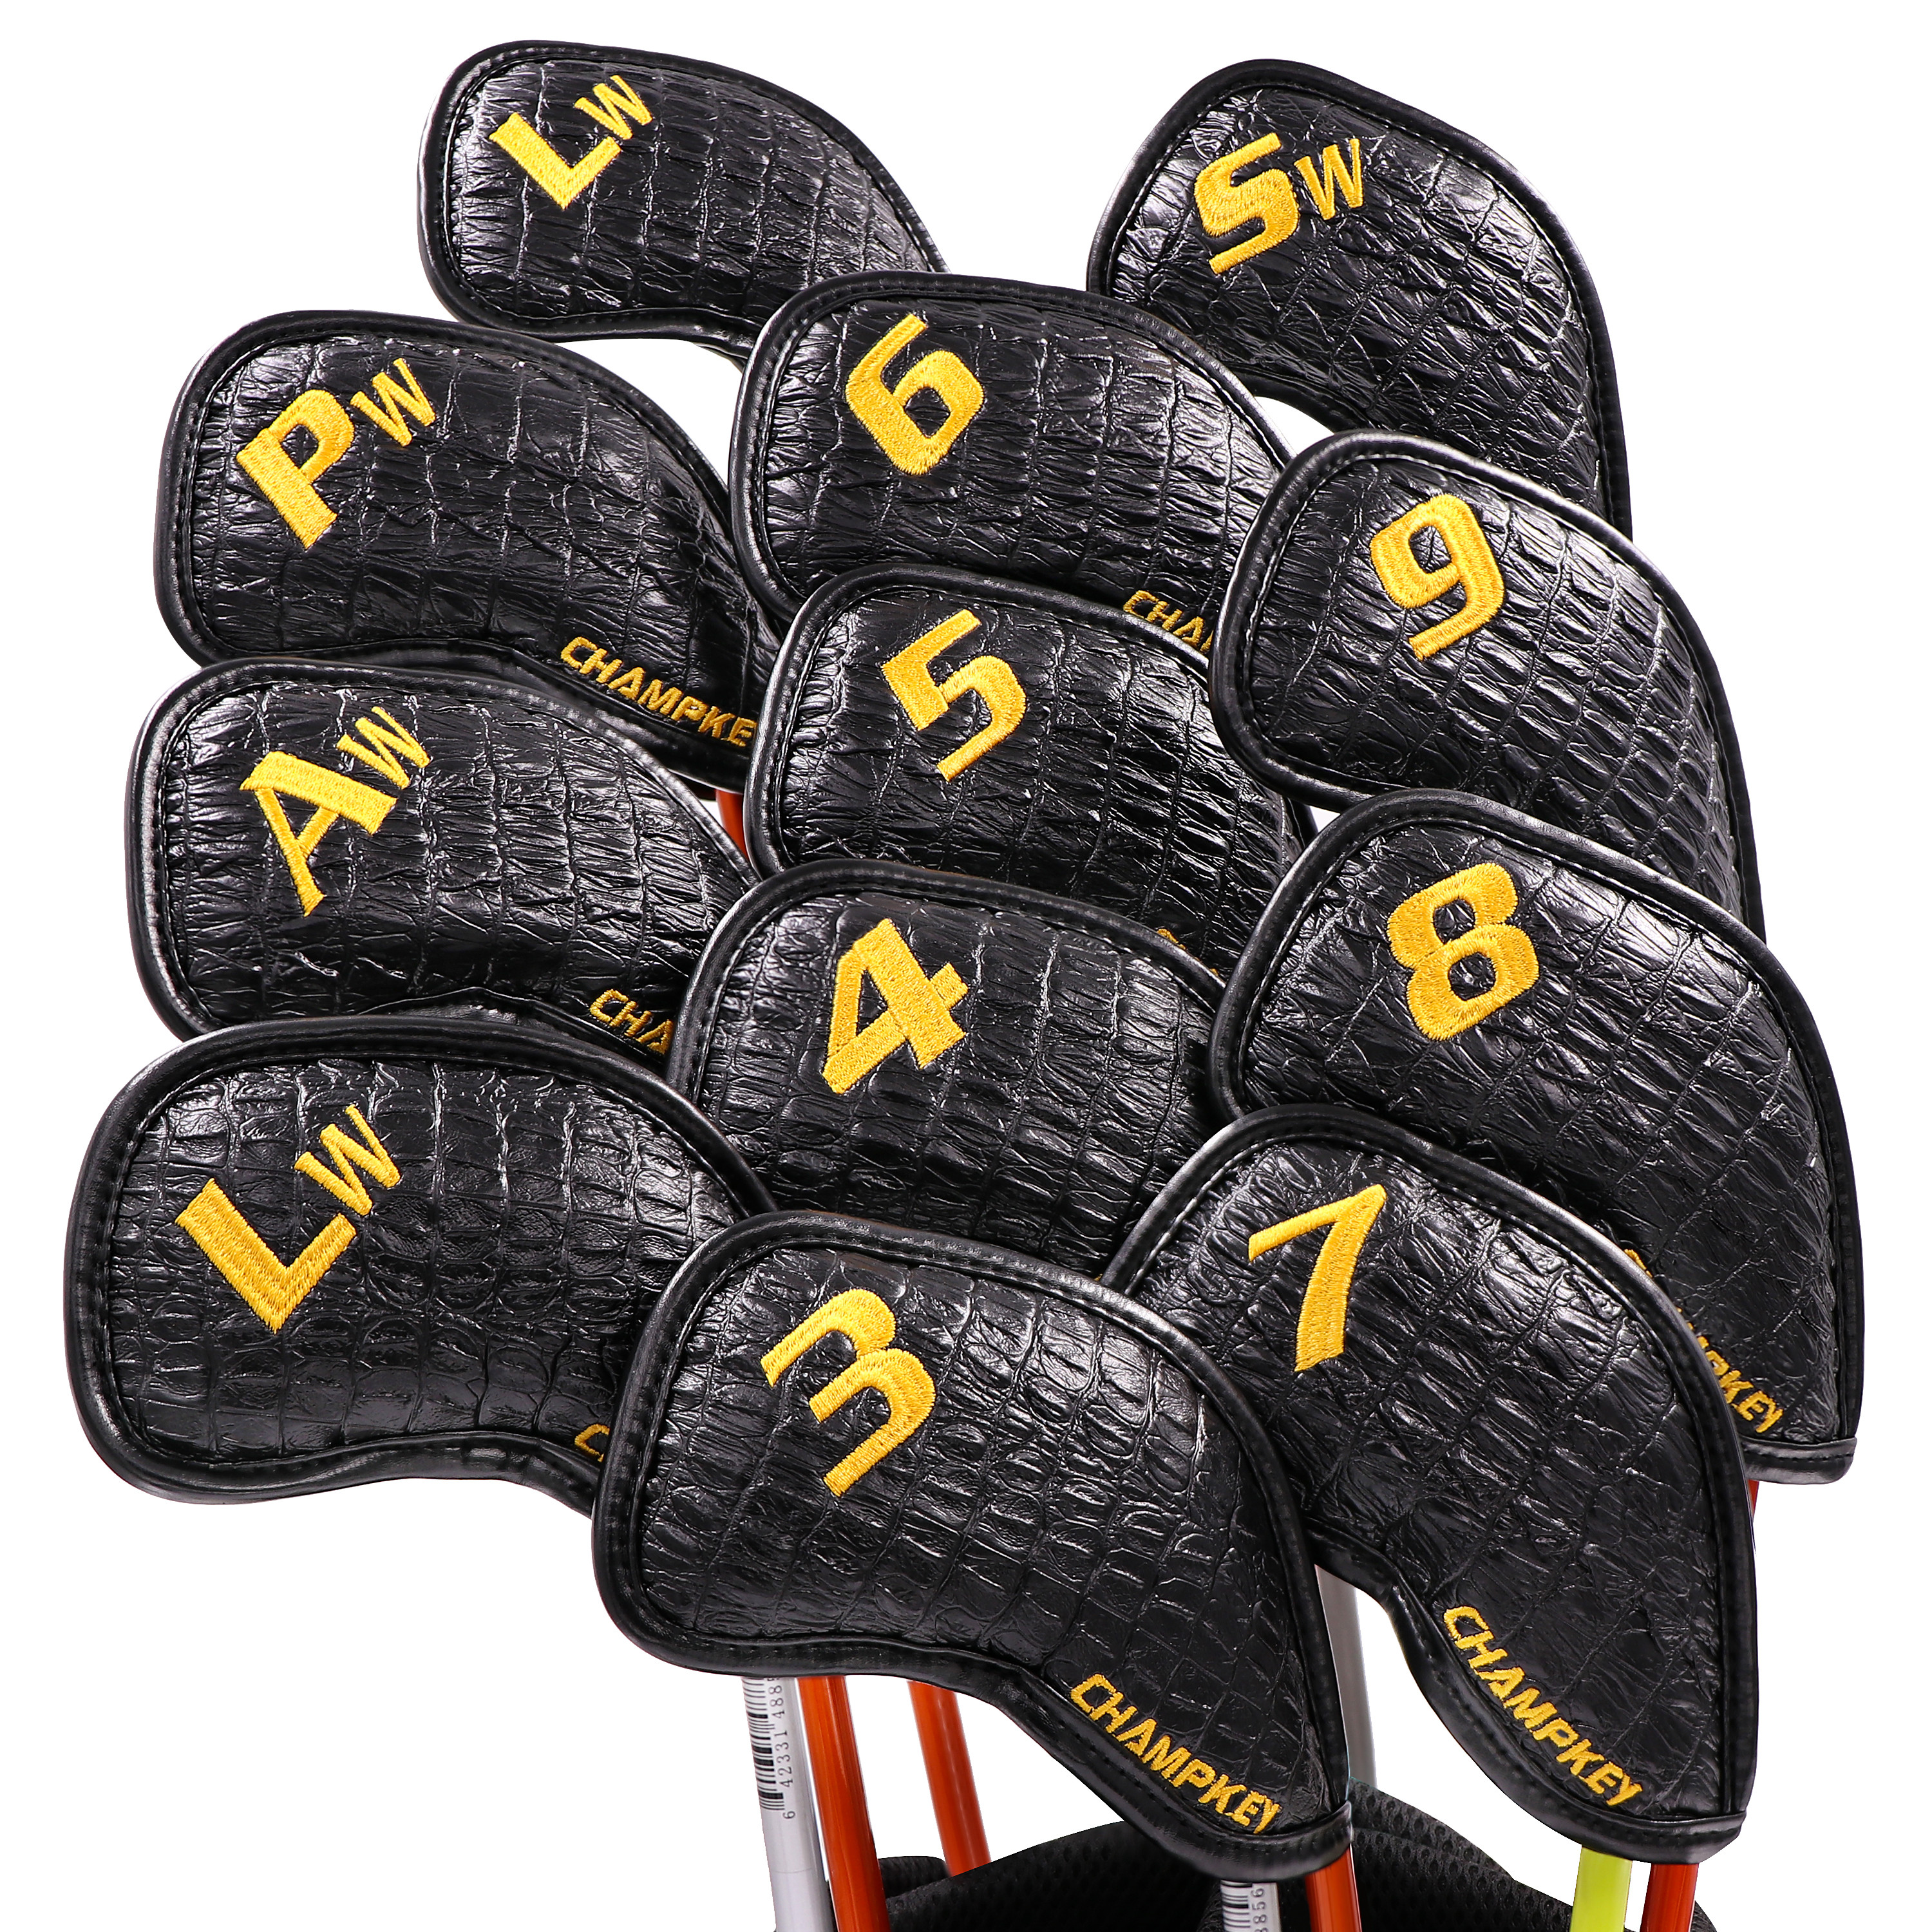 NEW Champkey Golf Club Covers Headcovers Set PU Leather 12 Pcs/Pack Fit Left Hand Right Hand Golfers Embroidery Logo Both Sides